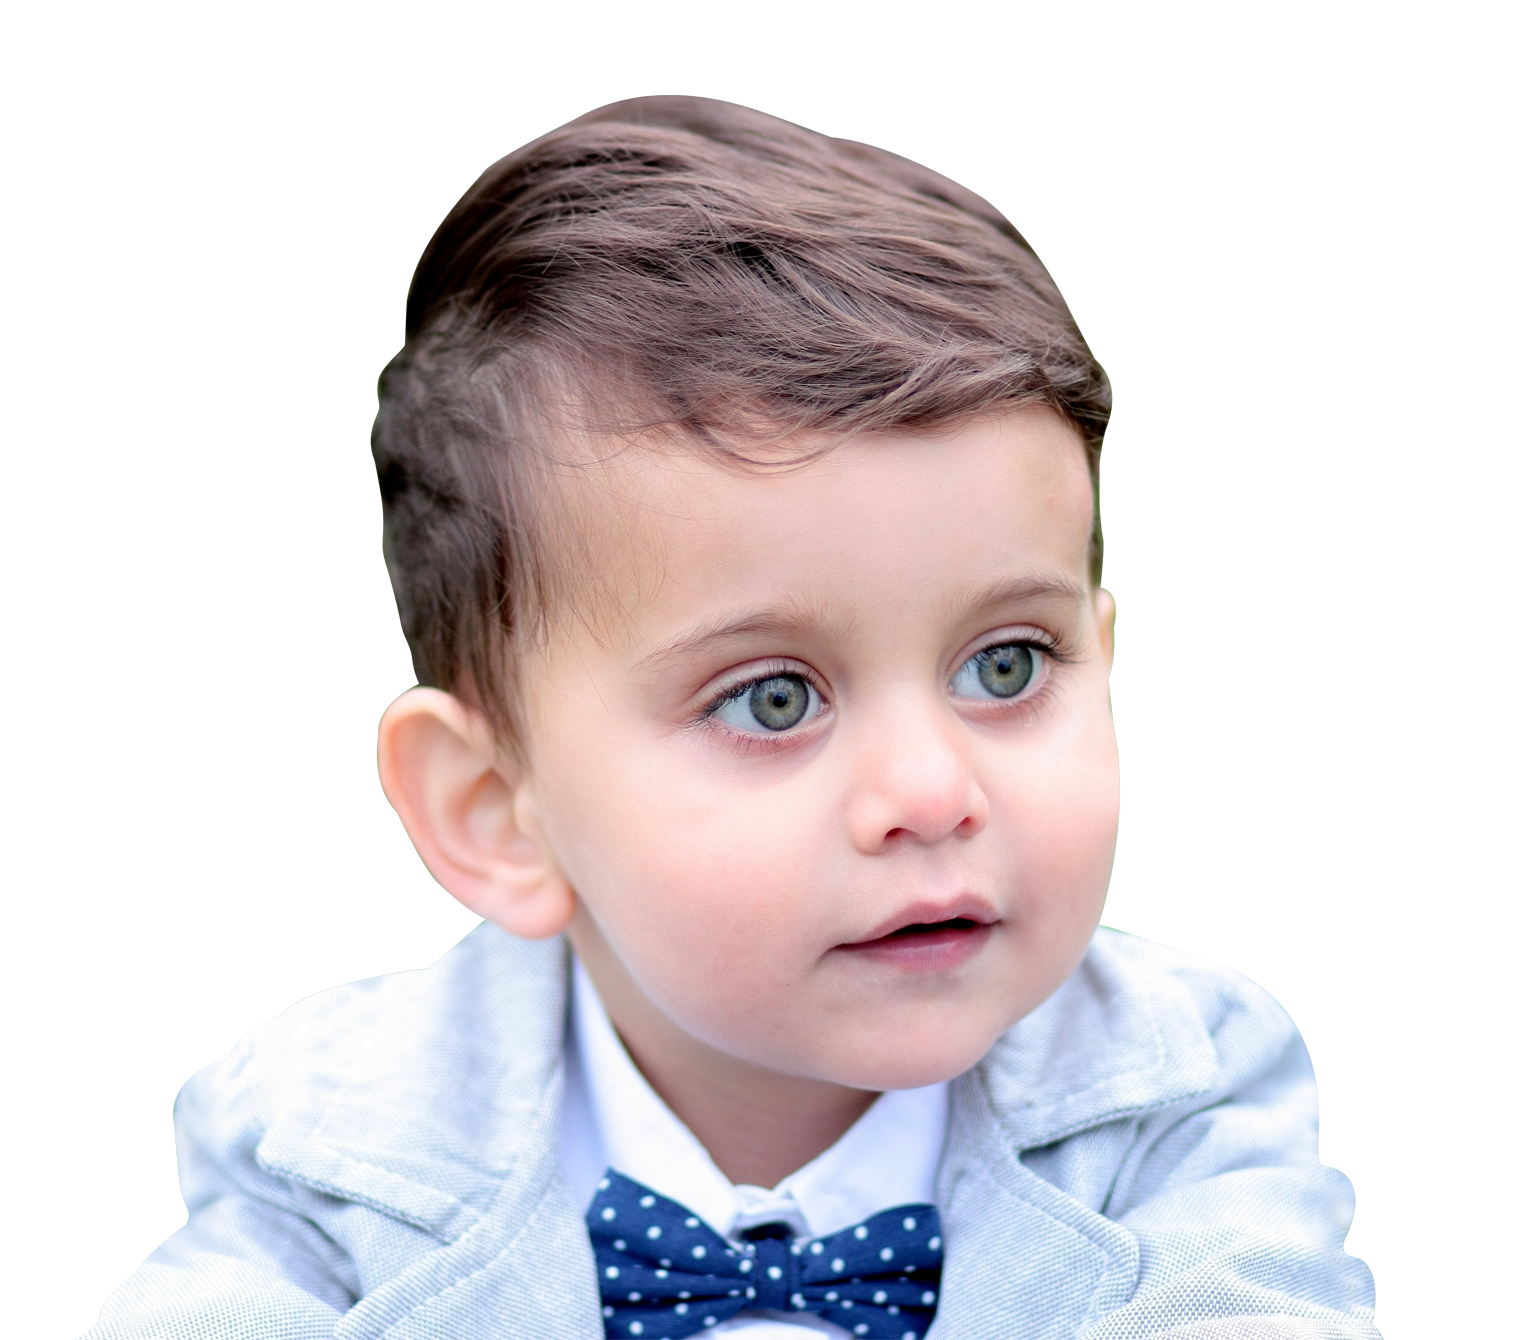 Boy PNG Picture | PNG Mart